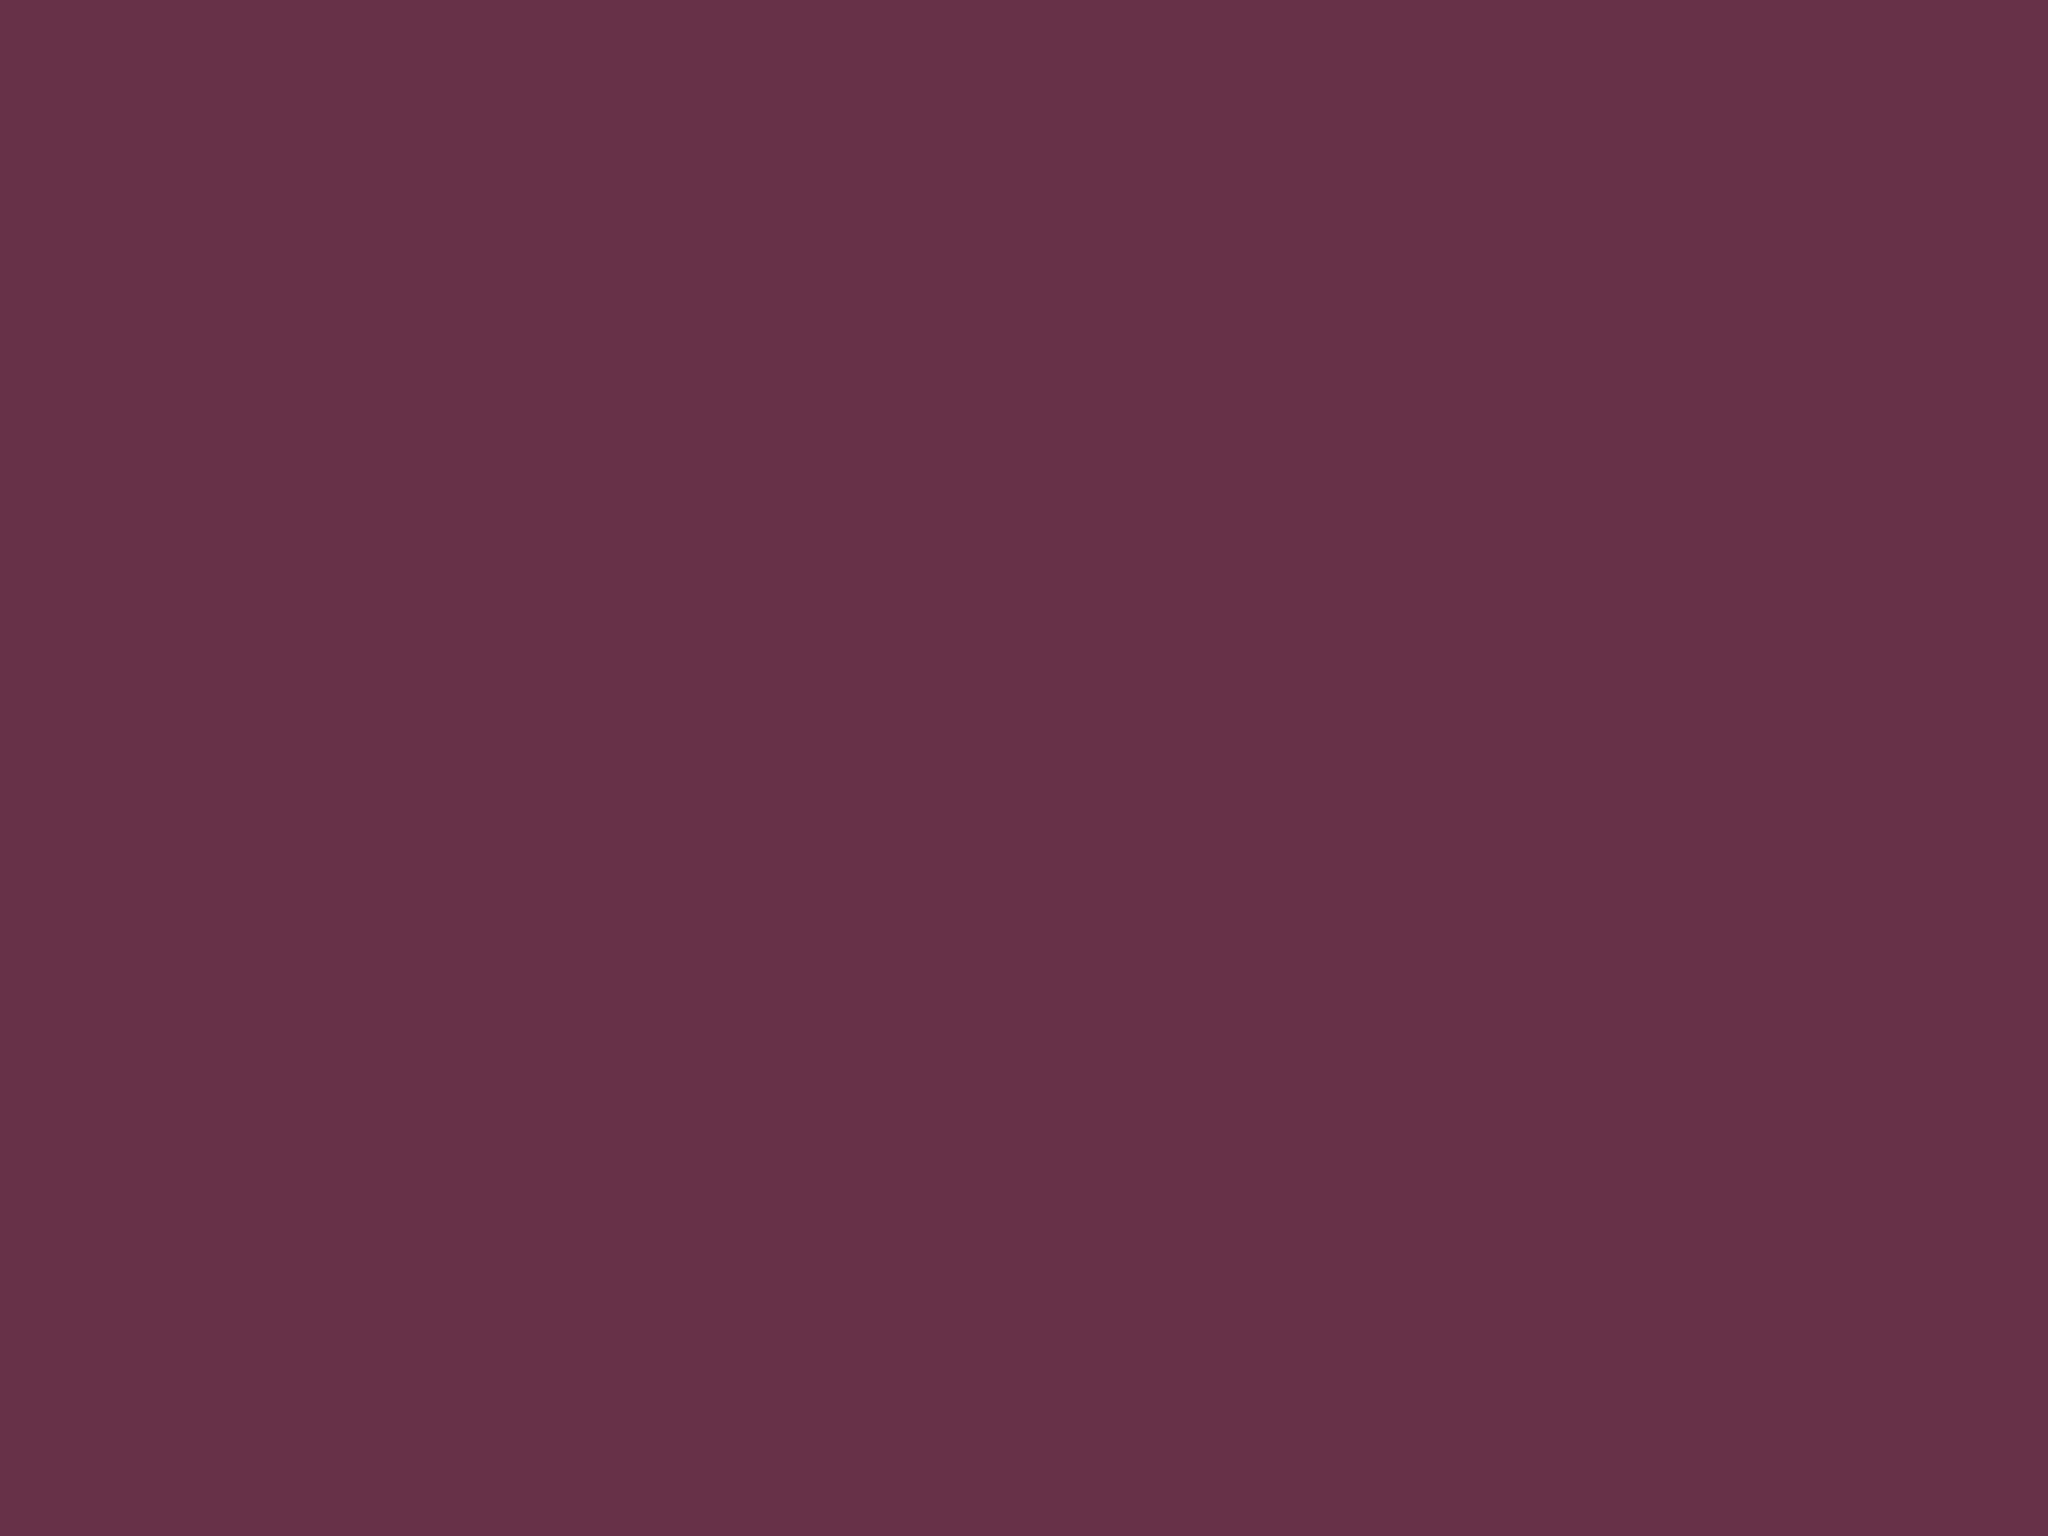 2048x1536 Old Mauve Solid Color Background